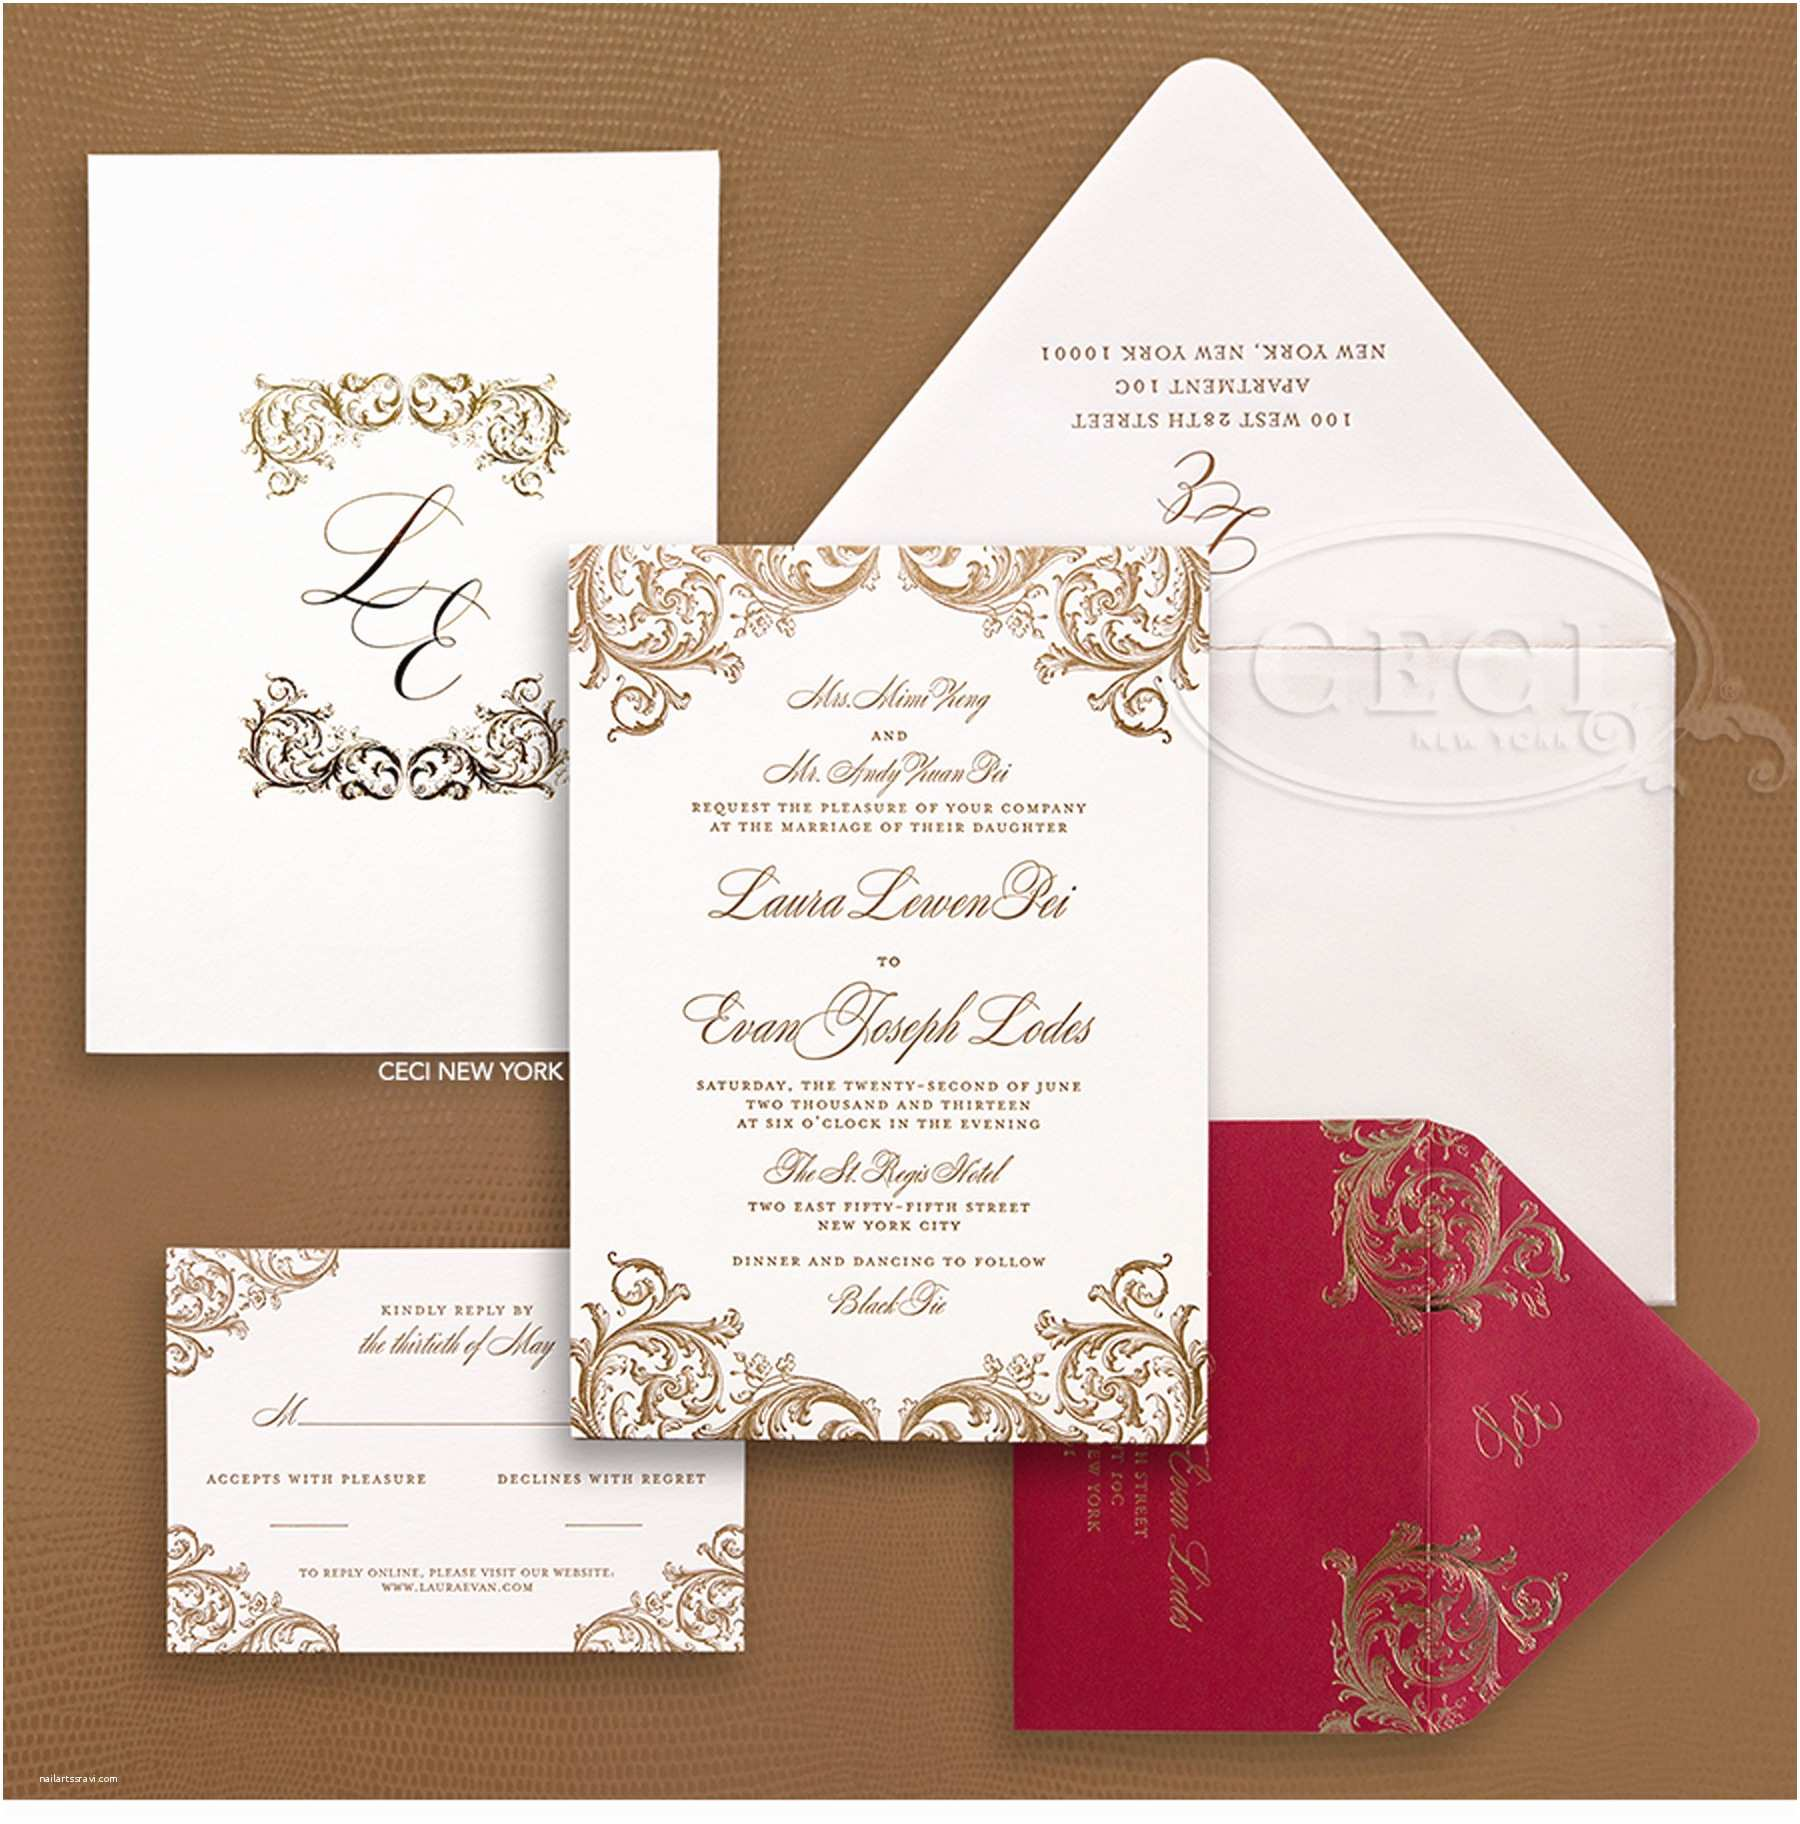 Red and Gold Wedding Invitations 10 Breathtaking Red and Gold Wedding Invitations to